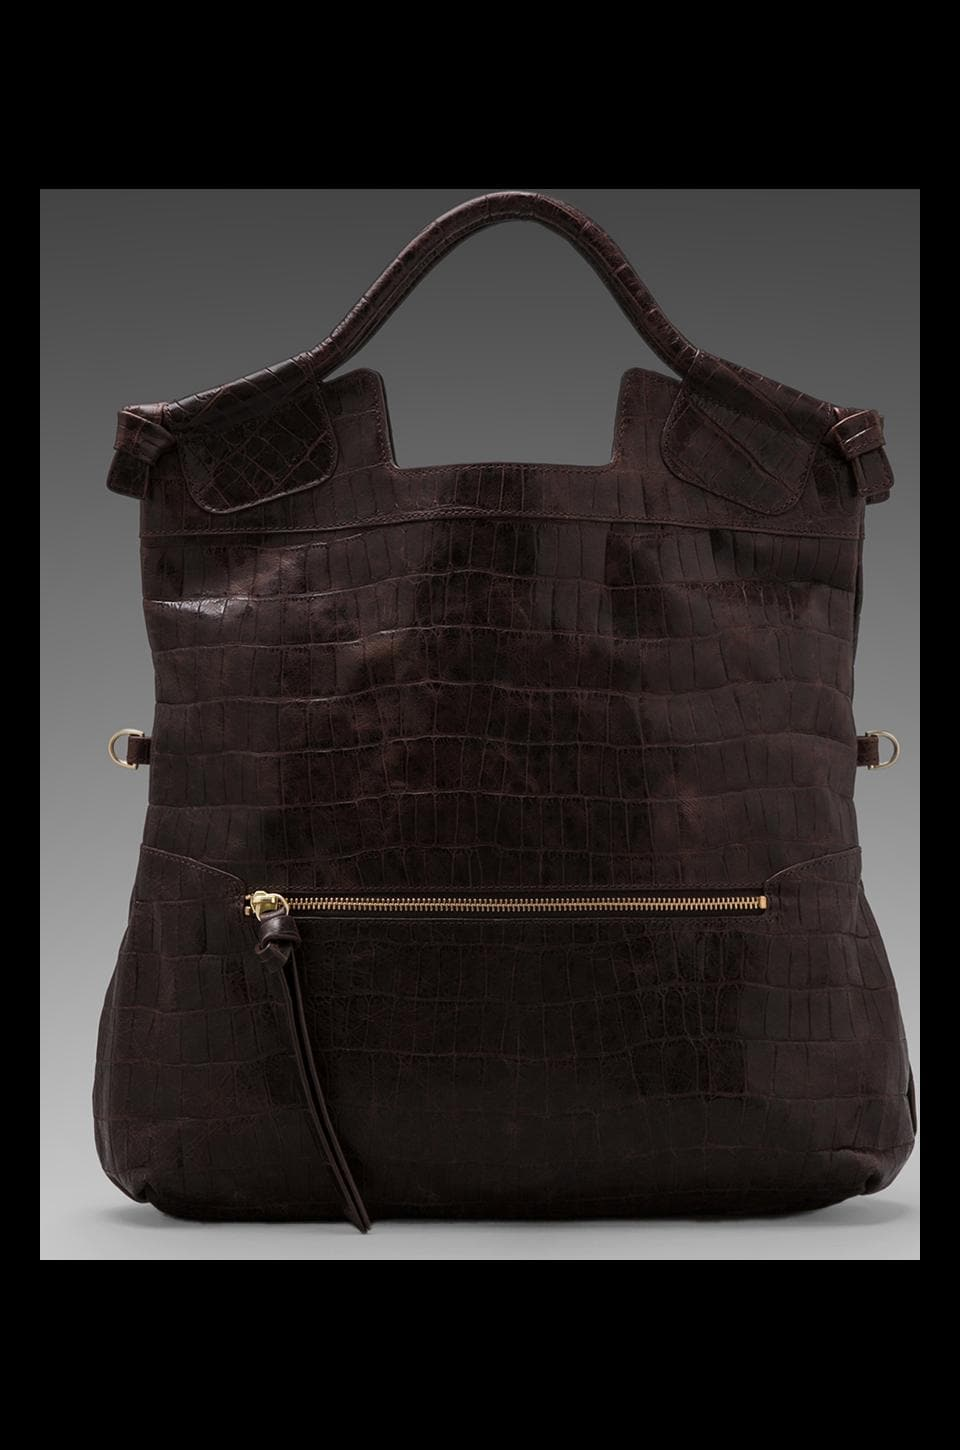 Foley + Corinna Mid City Bag in Brownie Croc